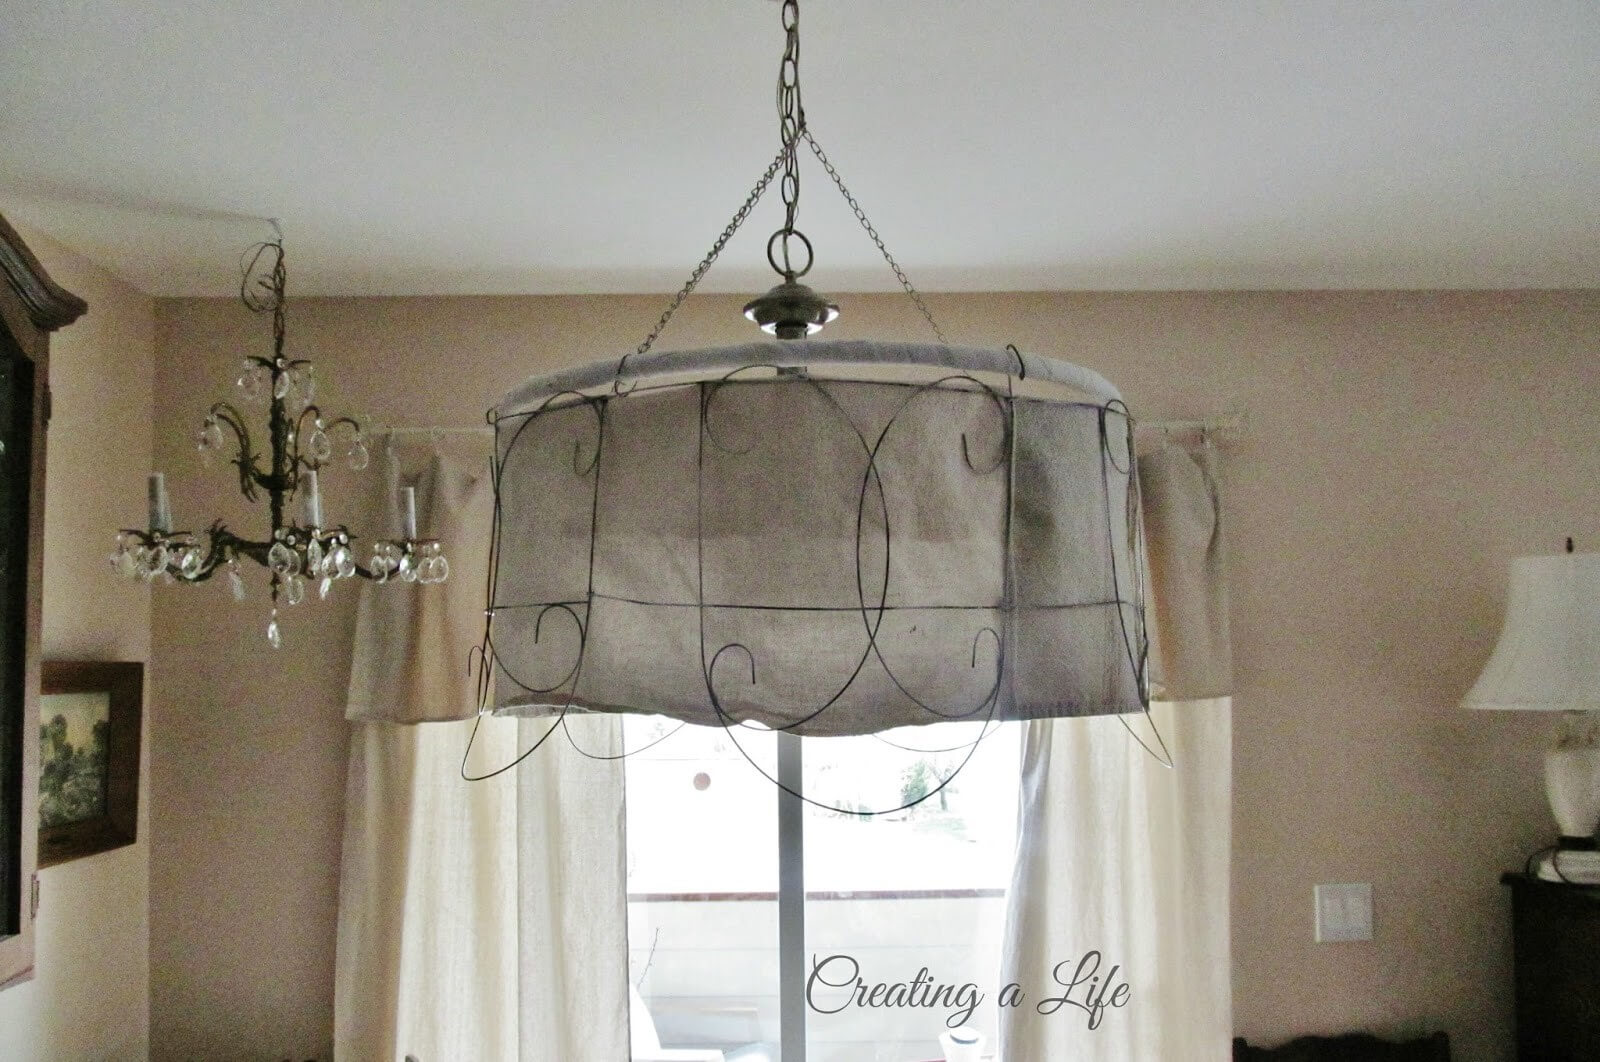 Decorative Wire Pendant Light With Burlap Lining